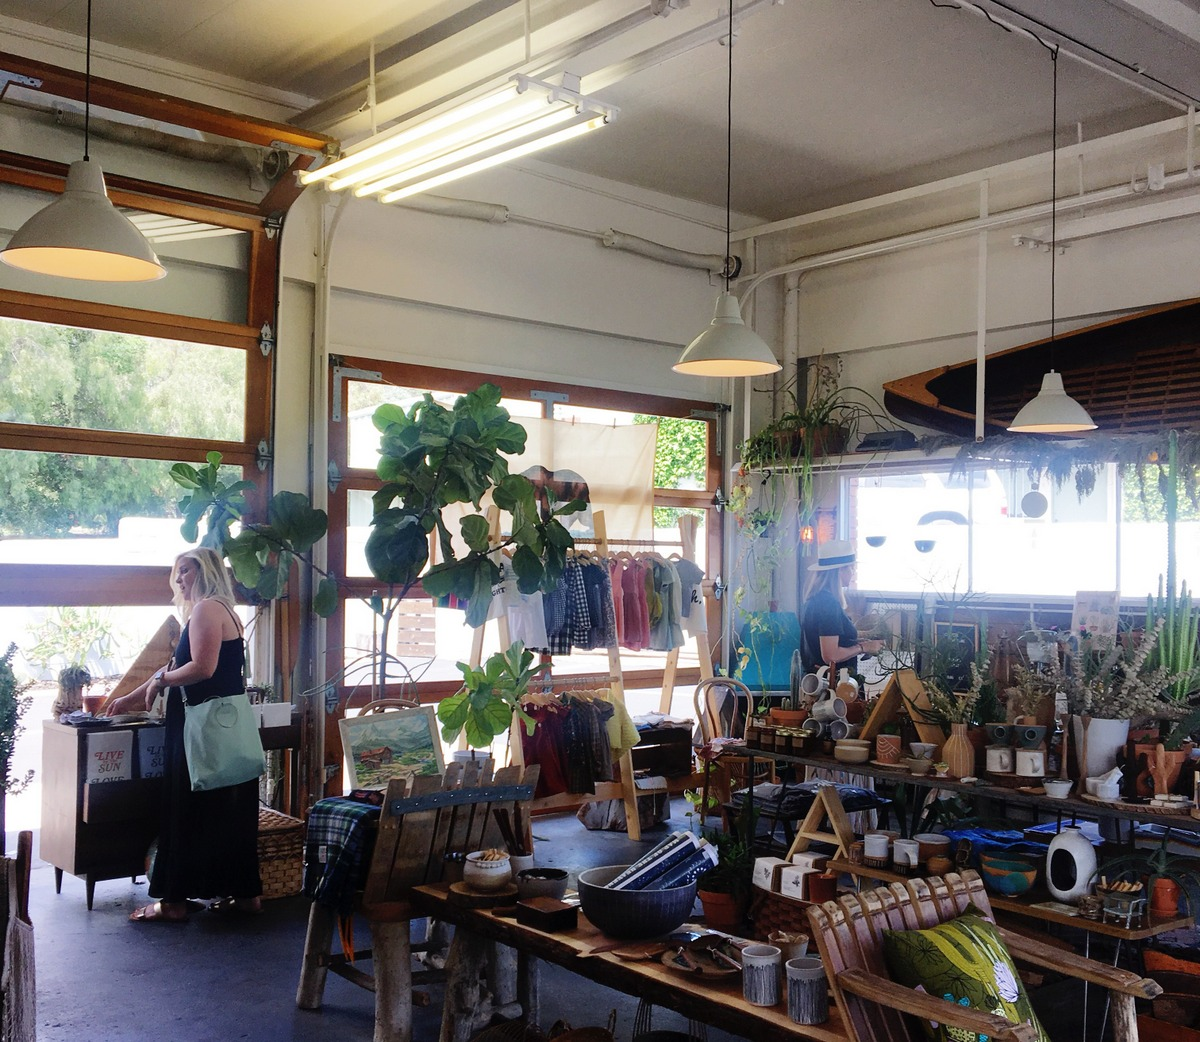 Girl's trip to Ojai: Where to stay, eat, shop, and relax in Ojai, CA